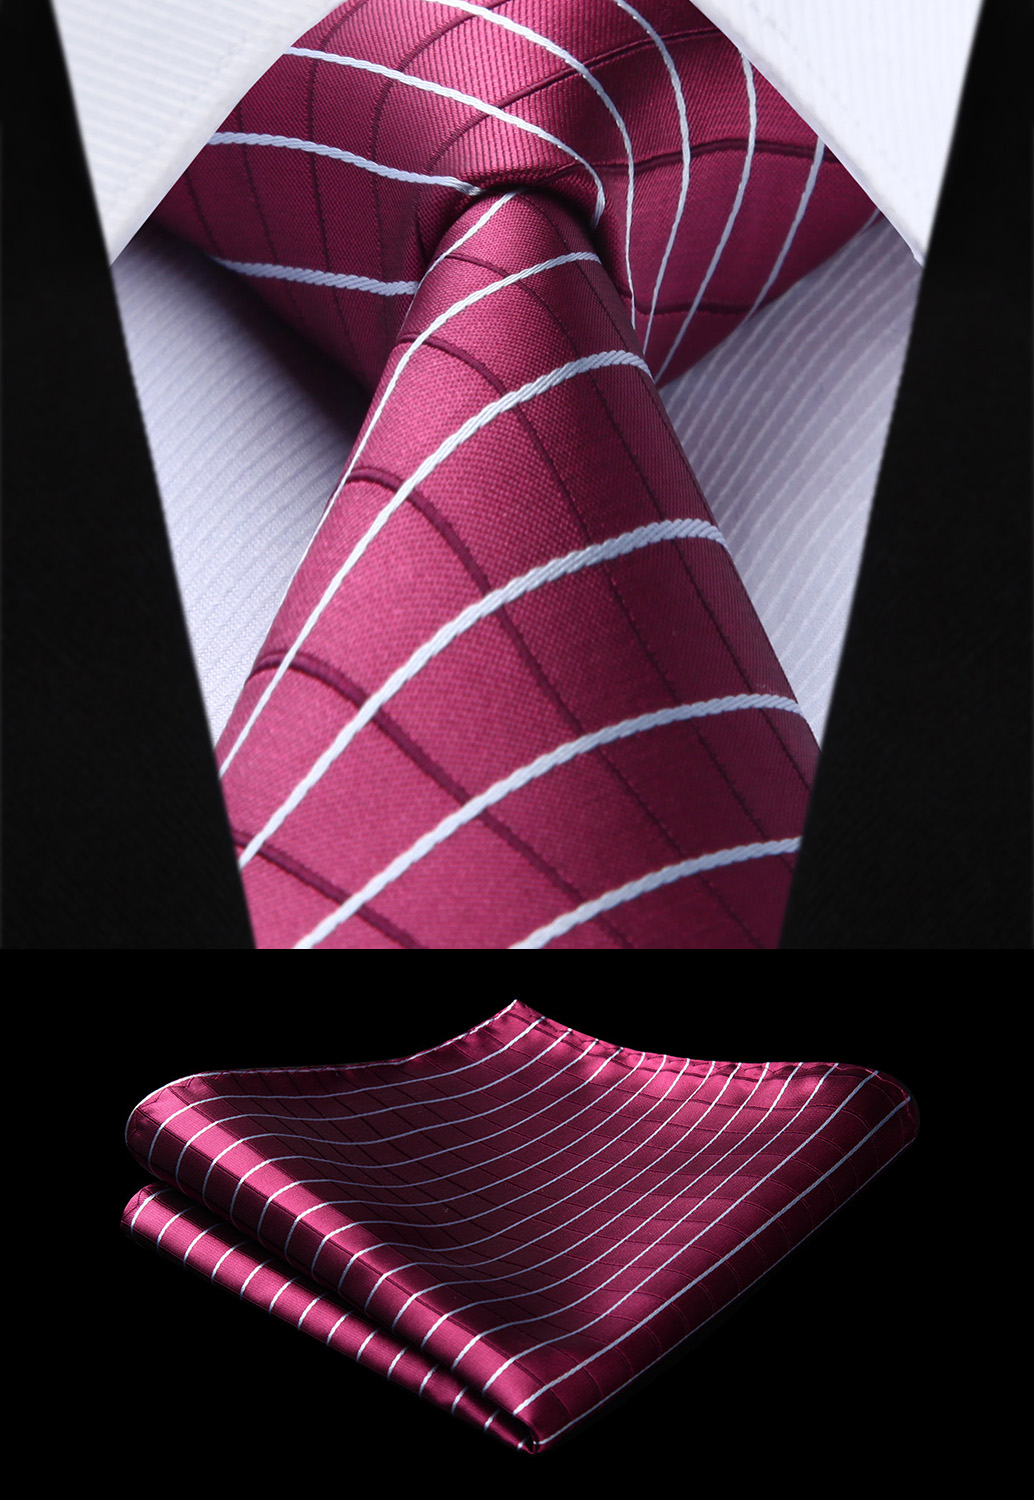 Party Wedding Classic Fashion Pocket Square Tie Woven Men Tie Burgundy White Plaid & Check Necktie Handkerchief Set#TC728U8S